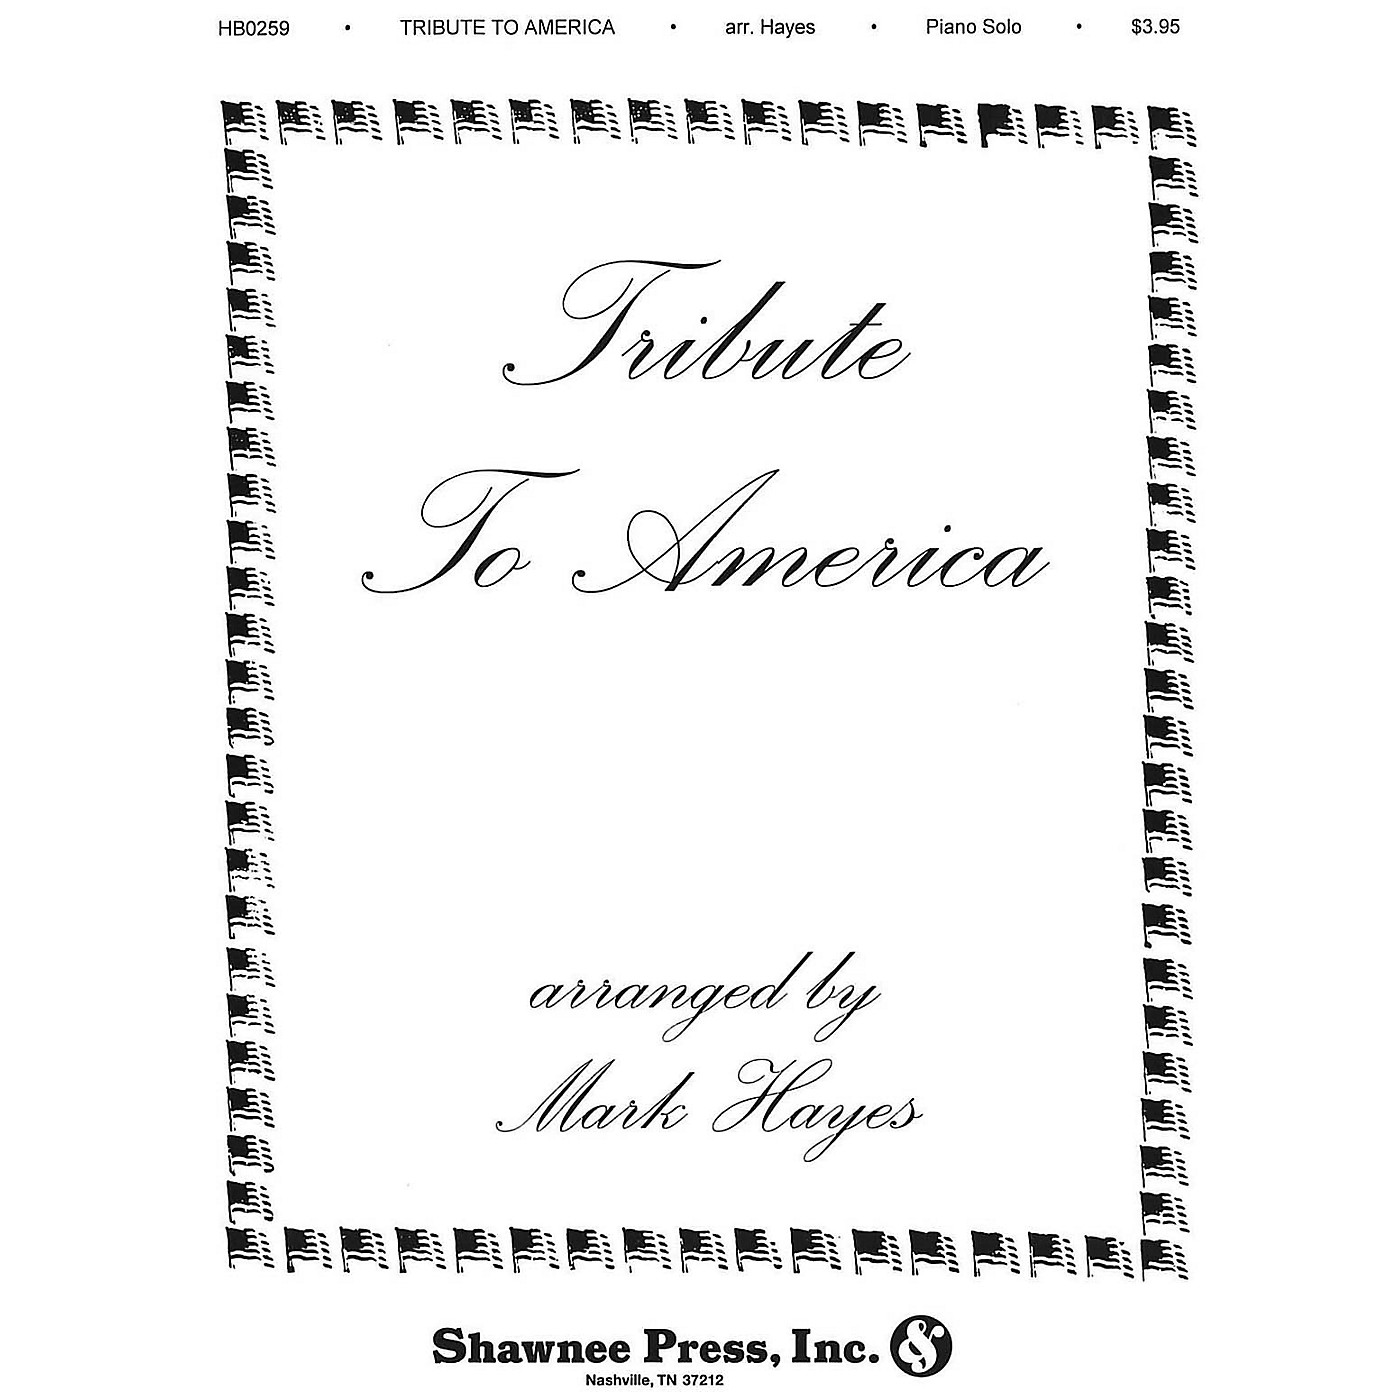 Hal Leonard Tribute to America Piano Solo thumbnail